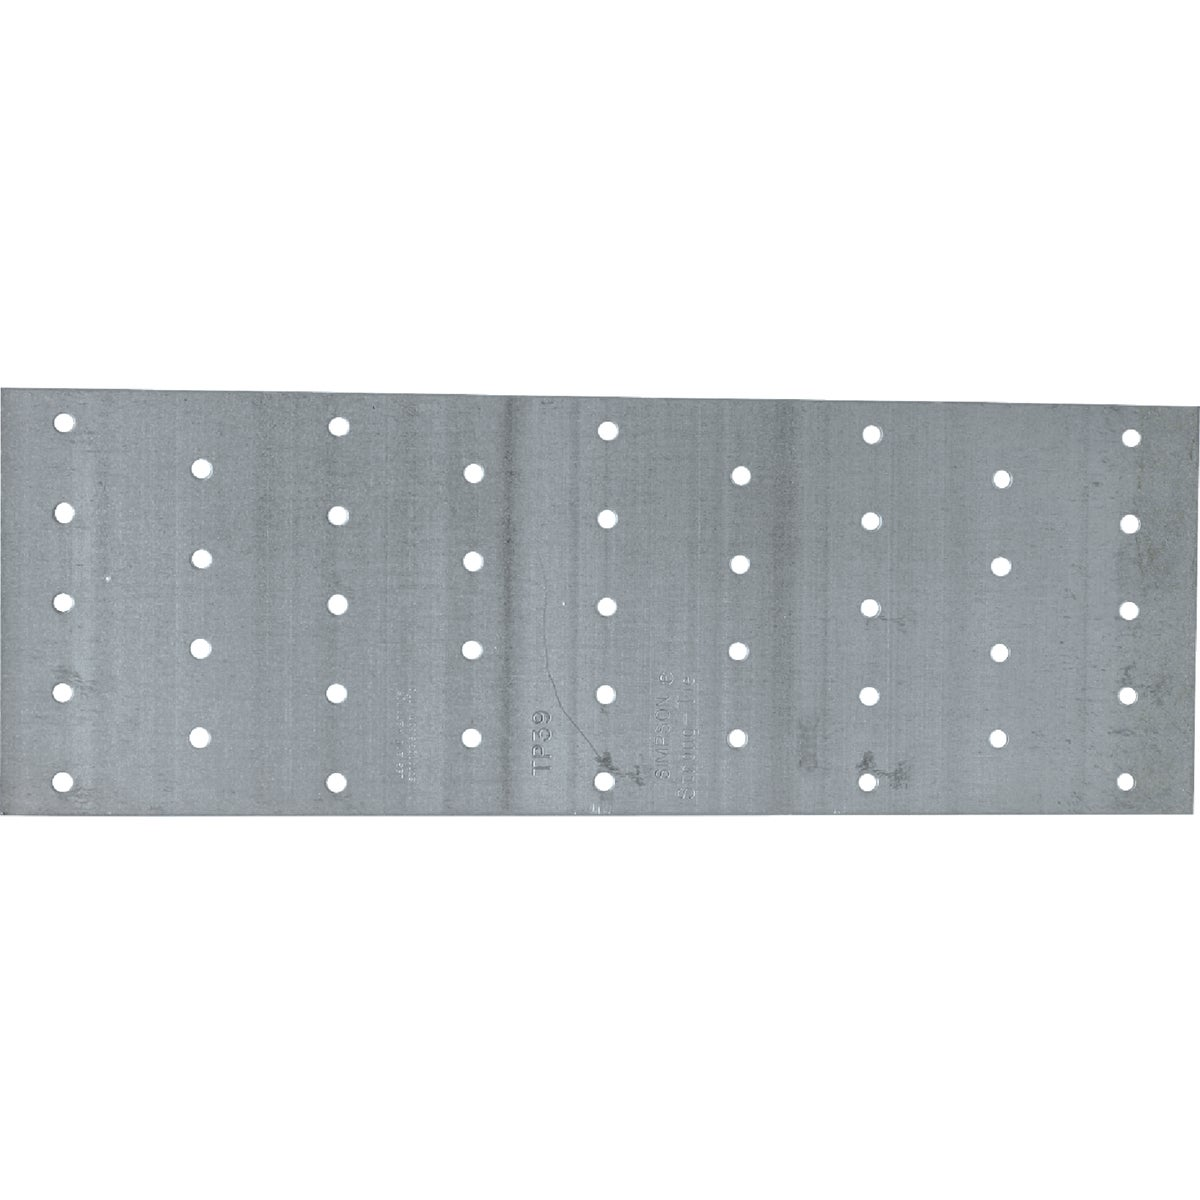 3-1/8X9 TIE PLATE